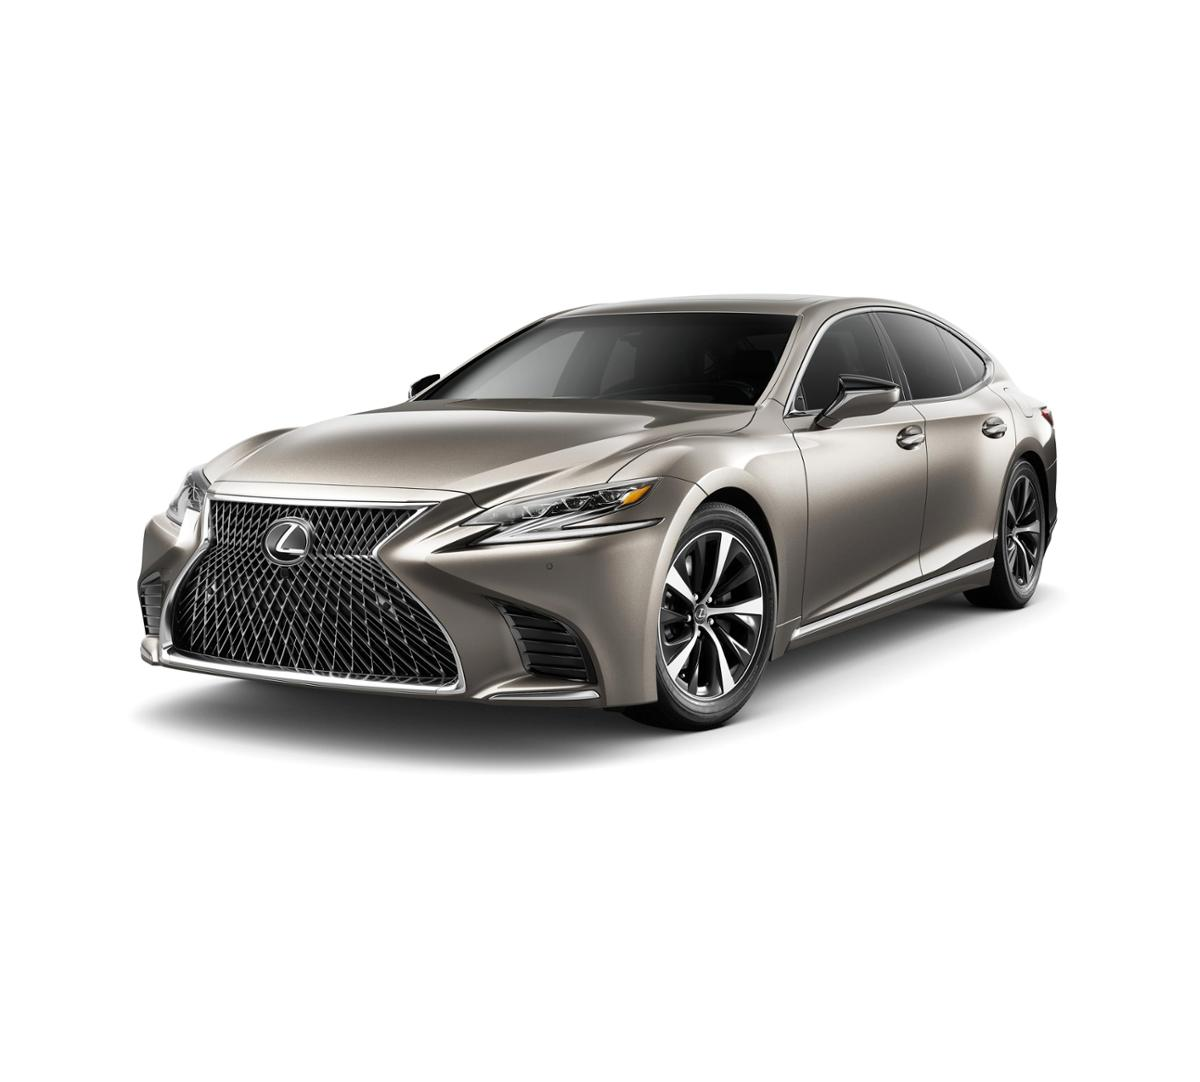 2019 Lexus LS 500 Vehicle Photo in Sacramento, CA 95821